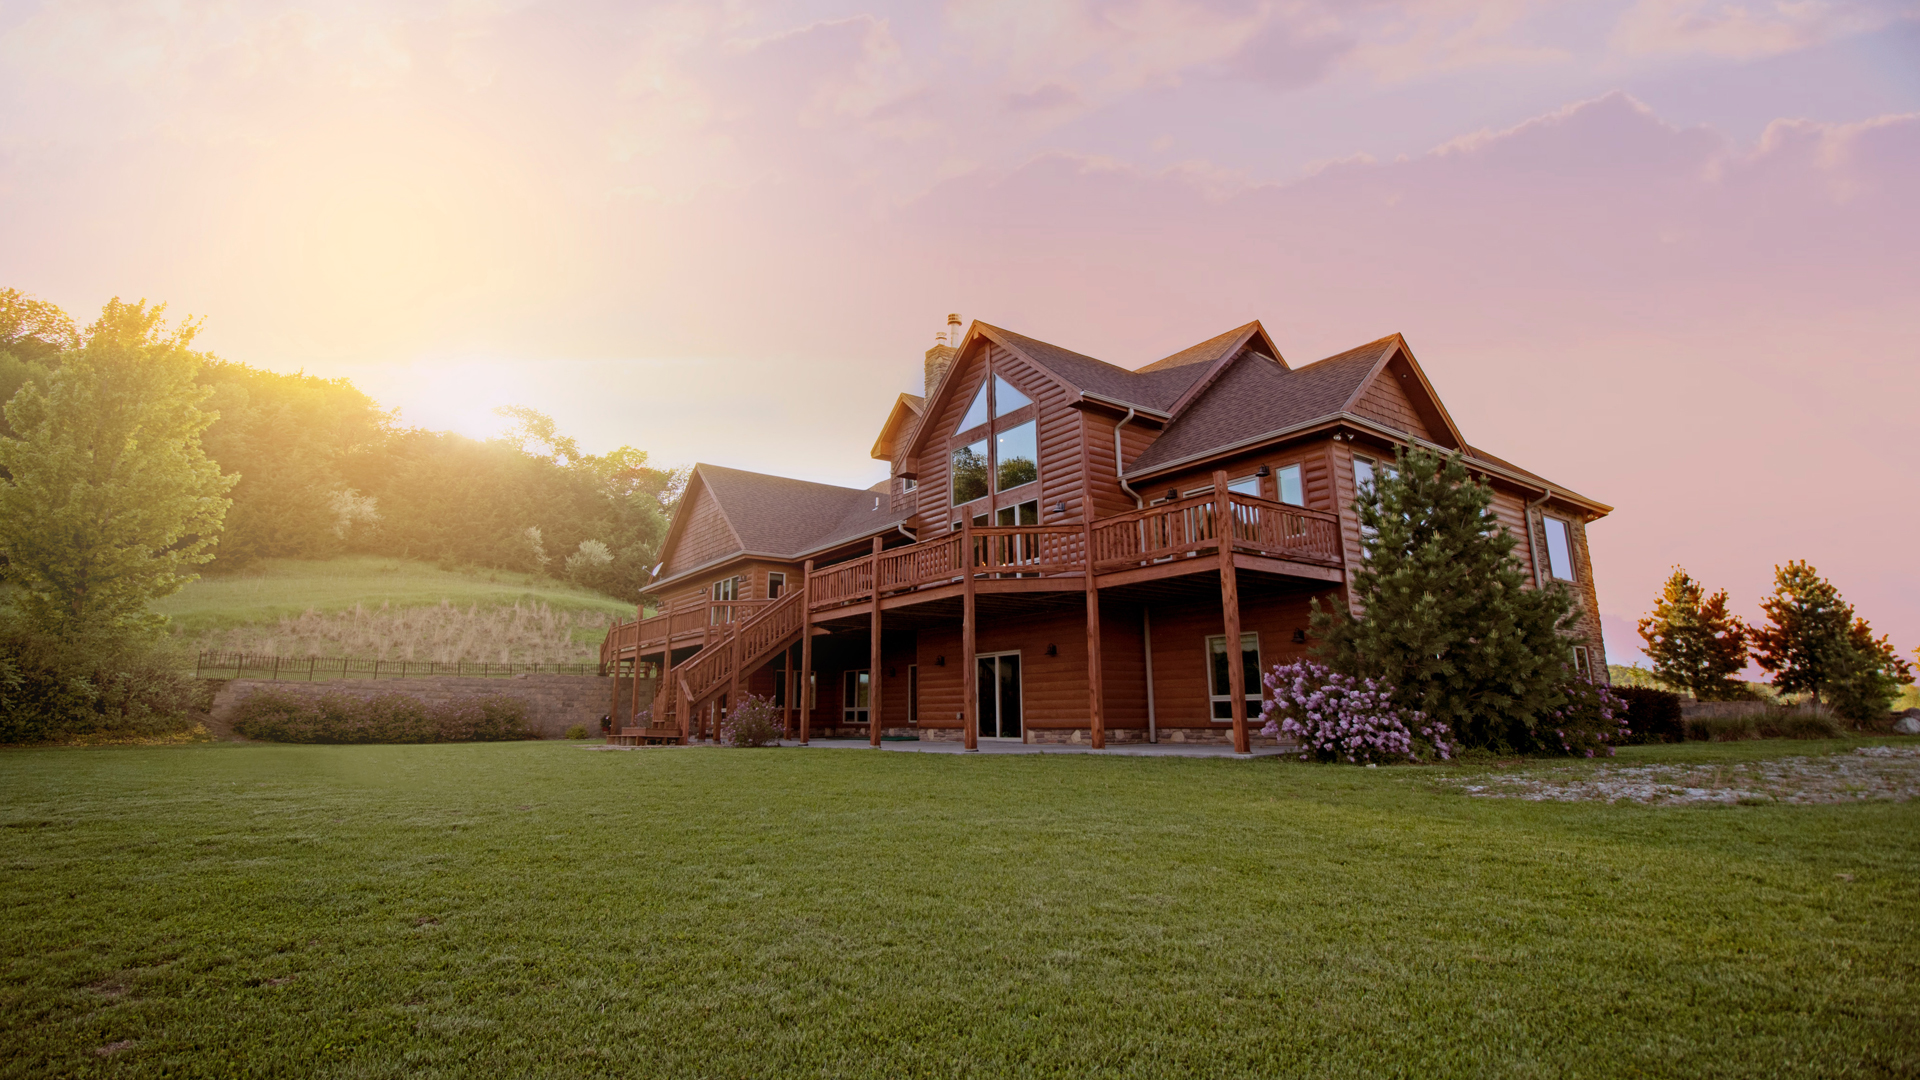 Beautiful Wooden Home in a field